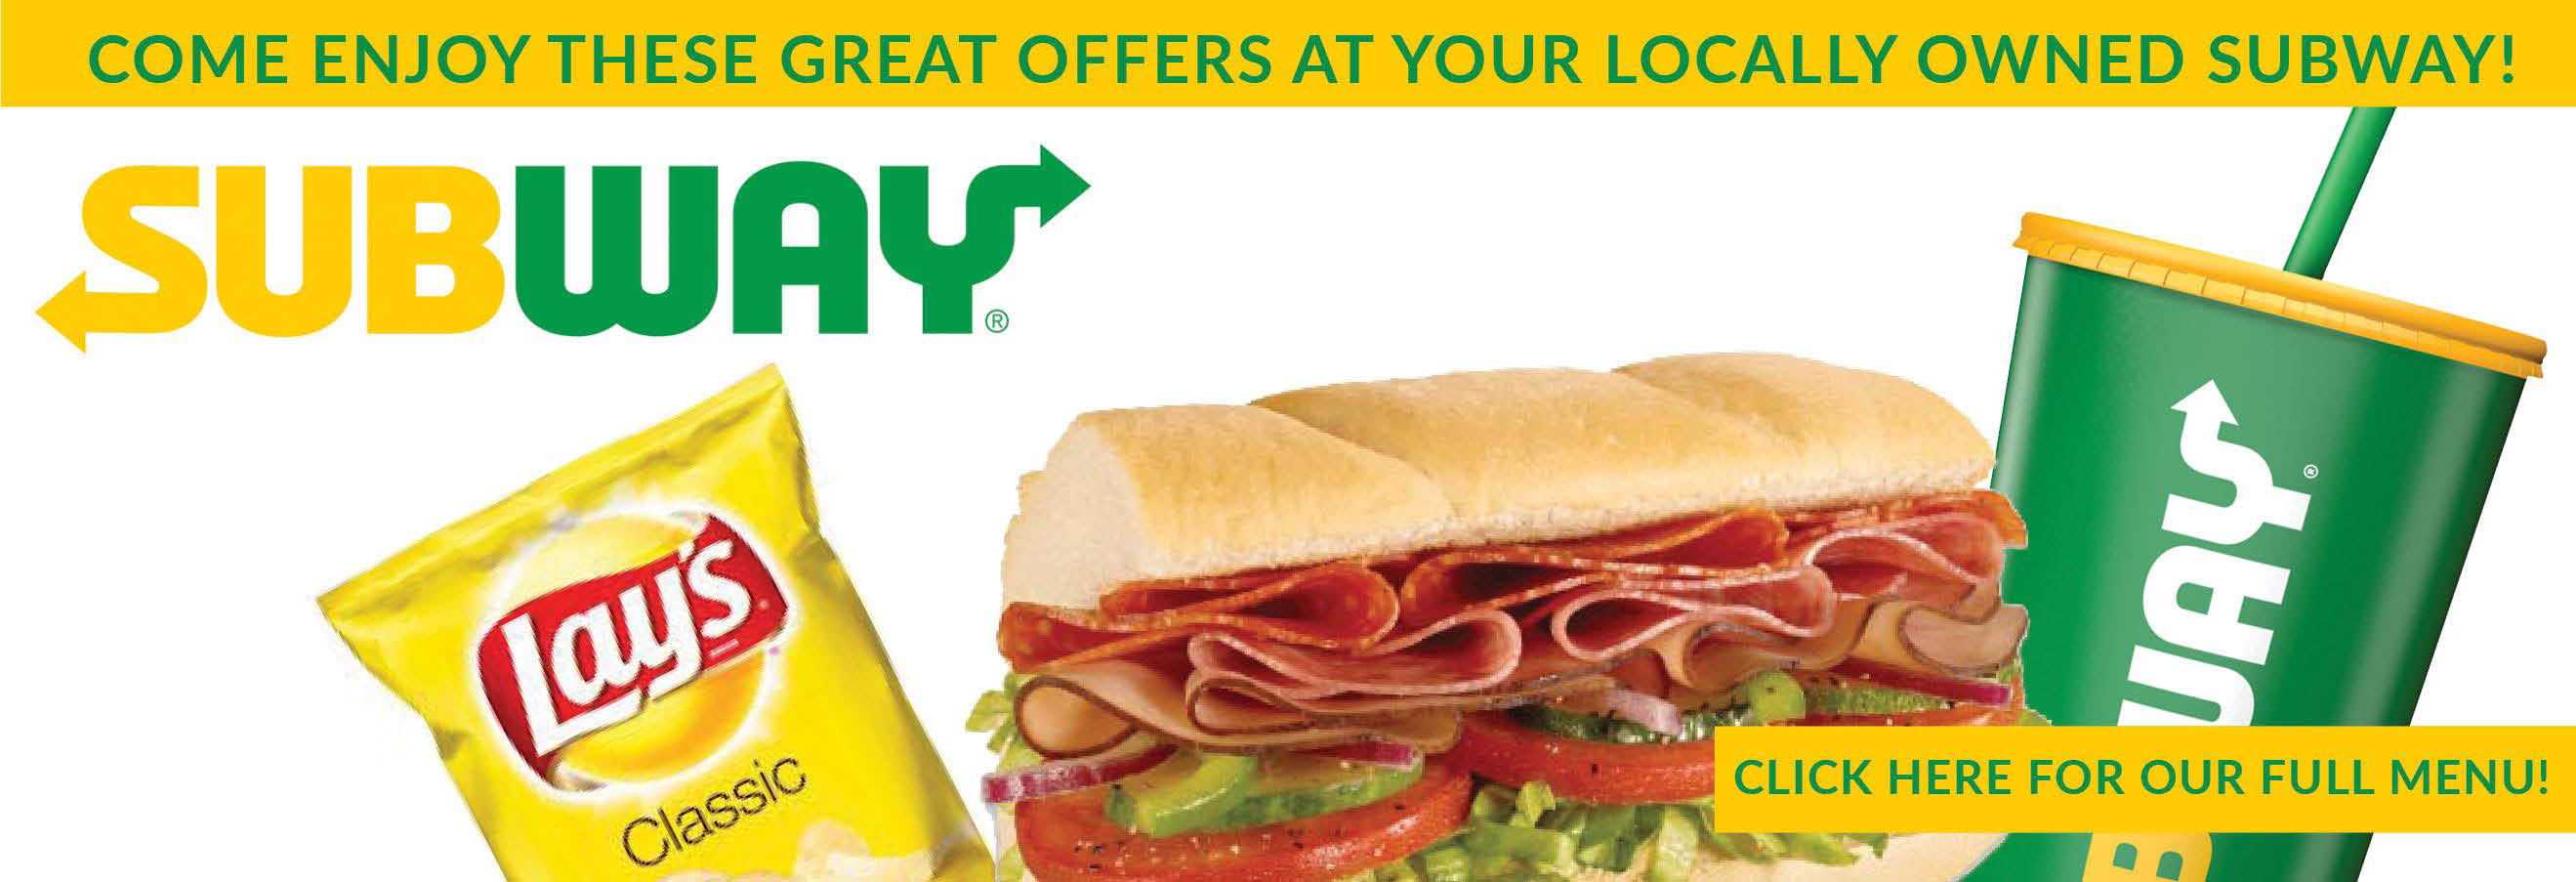 Breakfast, Lunch, Dinner, Subs, Subway, cookies, Chips, Fresh, Fresh Subs, Healthy, soups